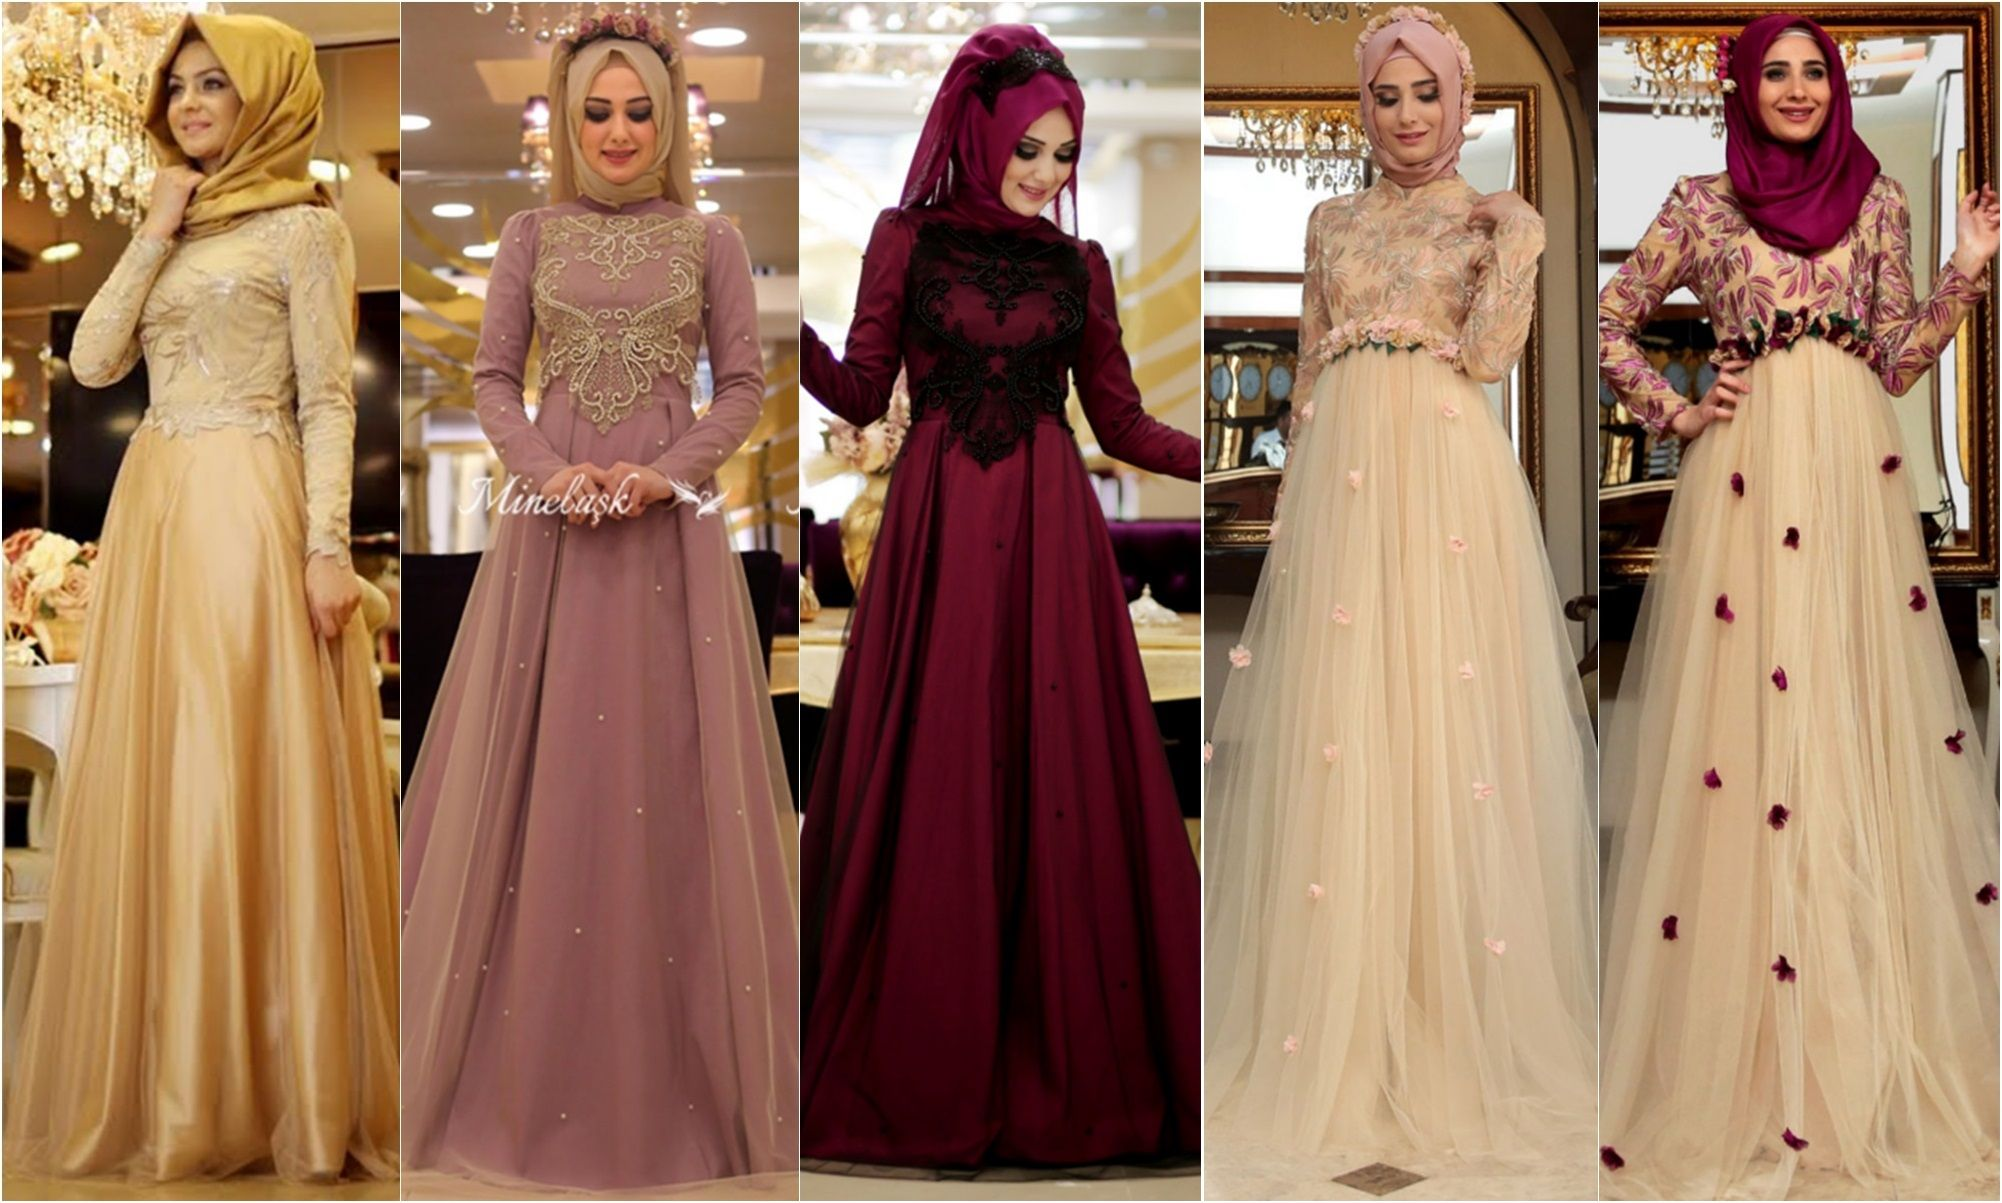 Beautiful Turkish Gowns – Prices & Shops | Pinterest | Gowns, Modest ...